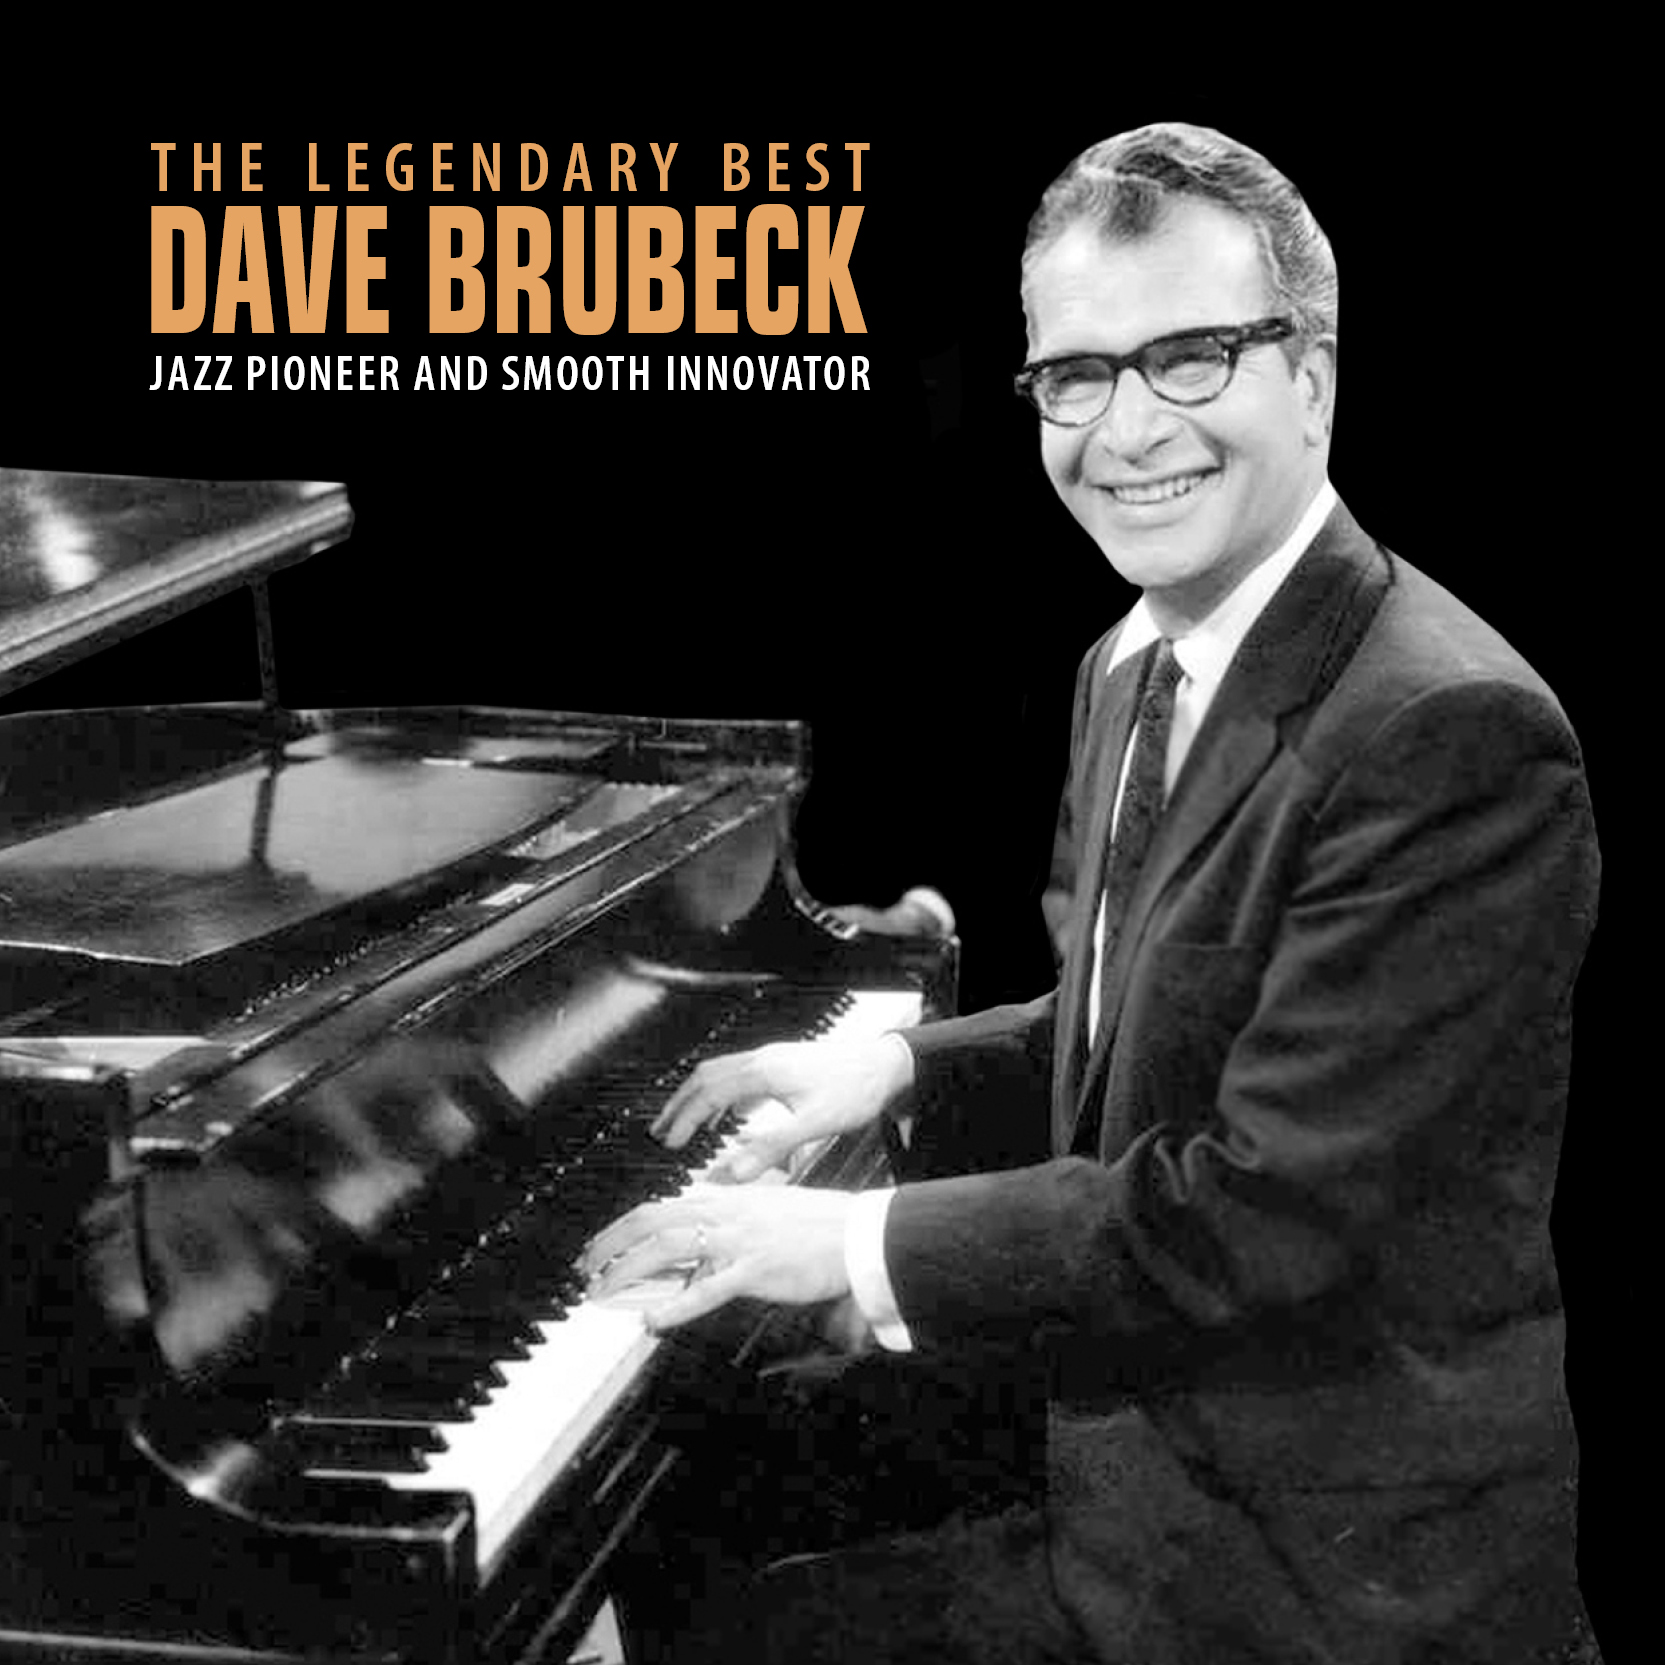 DAVE BRUBECK(데이브 브루벡) - THE LEGENDARY BEST : JAZZ PIONEER AND SMOOTH INNOVATOR (3CD,리마스터링)